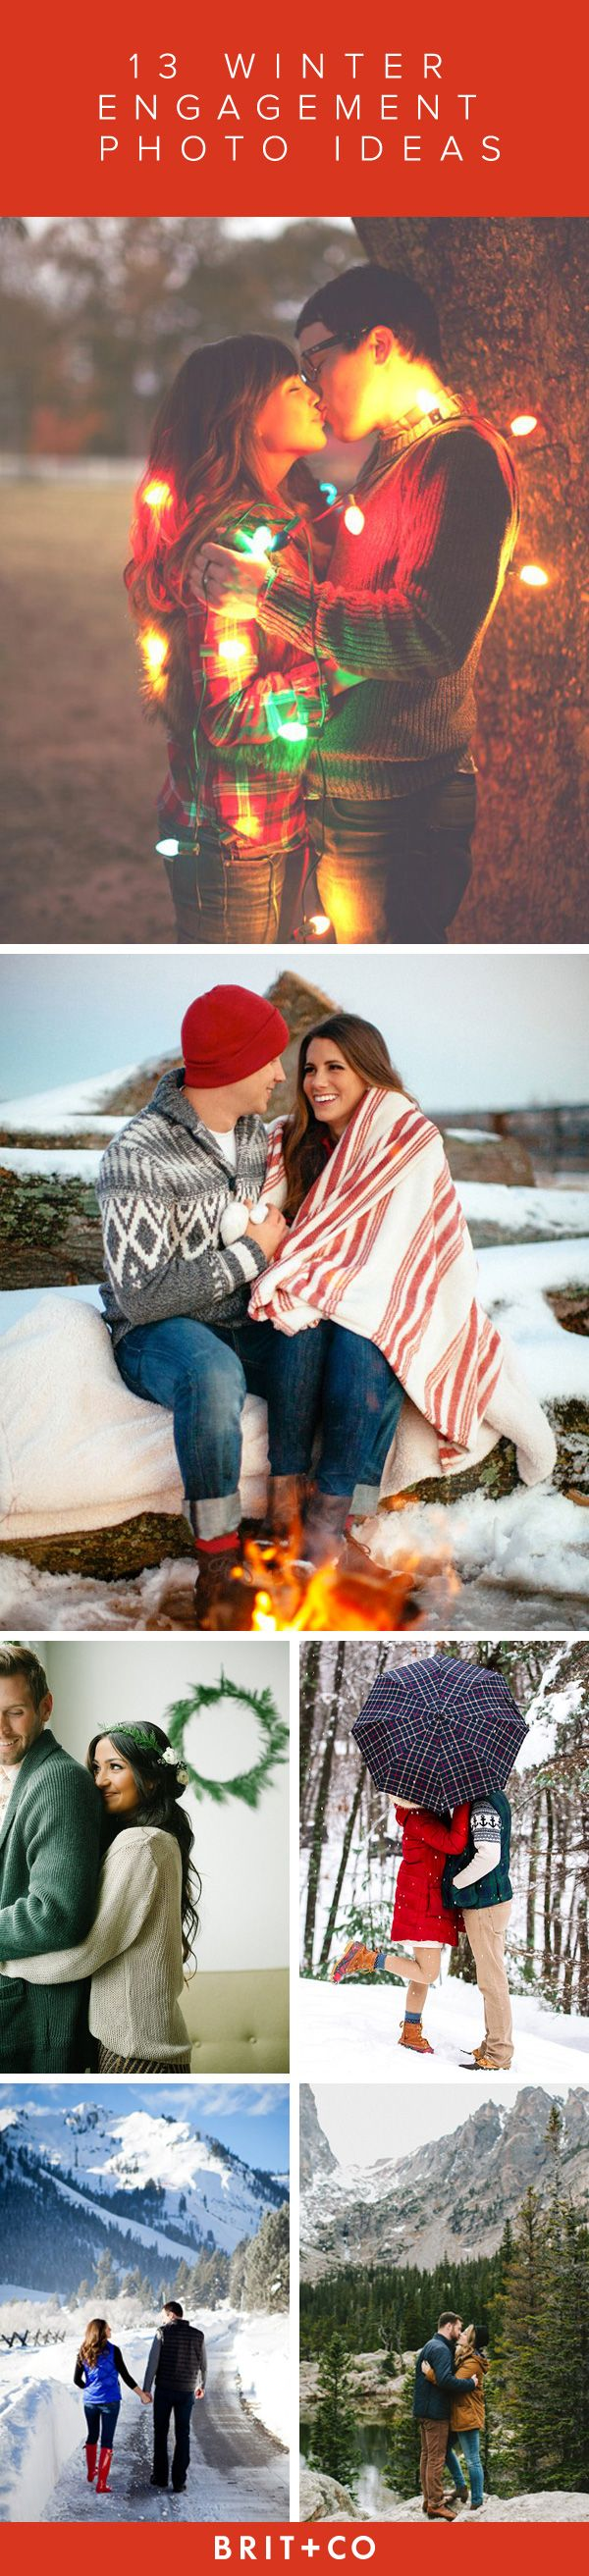 We love these winter engagement photo shoot ideas. If you and your love are waiting for the first snow fall or the rise of twinkly lights to take your engagement pictures, these ideas are all the inspiration you need.